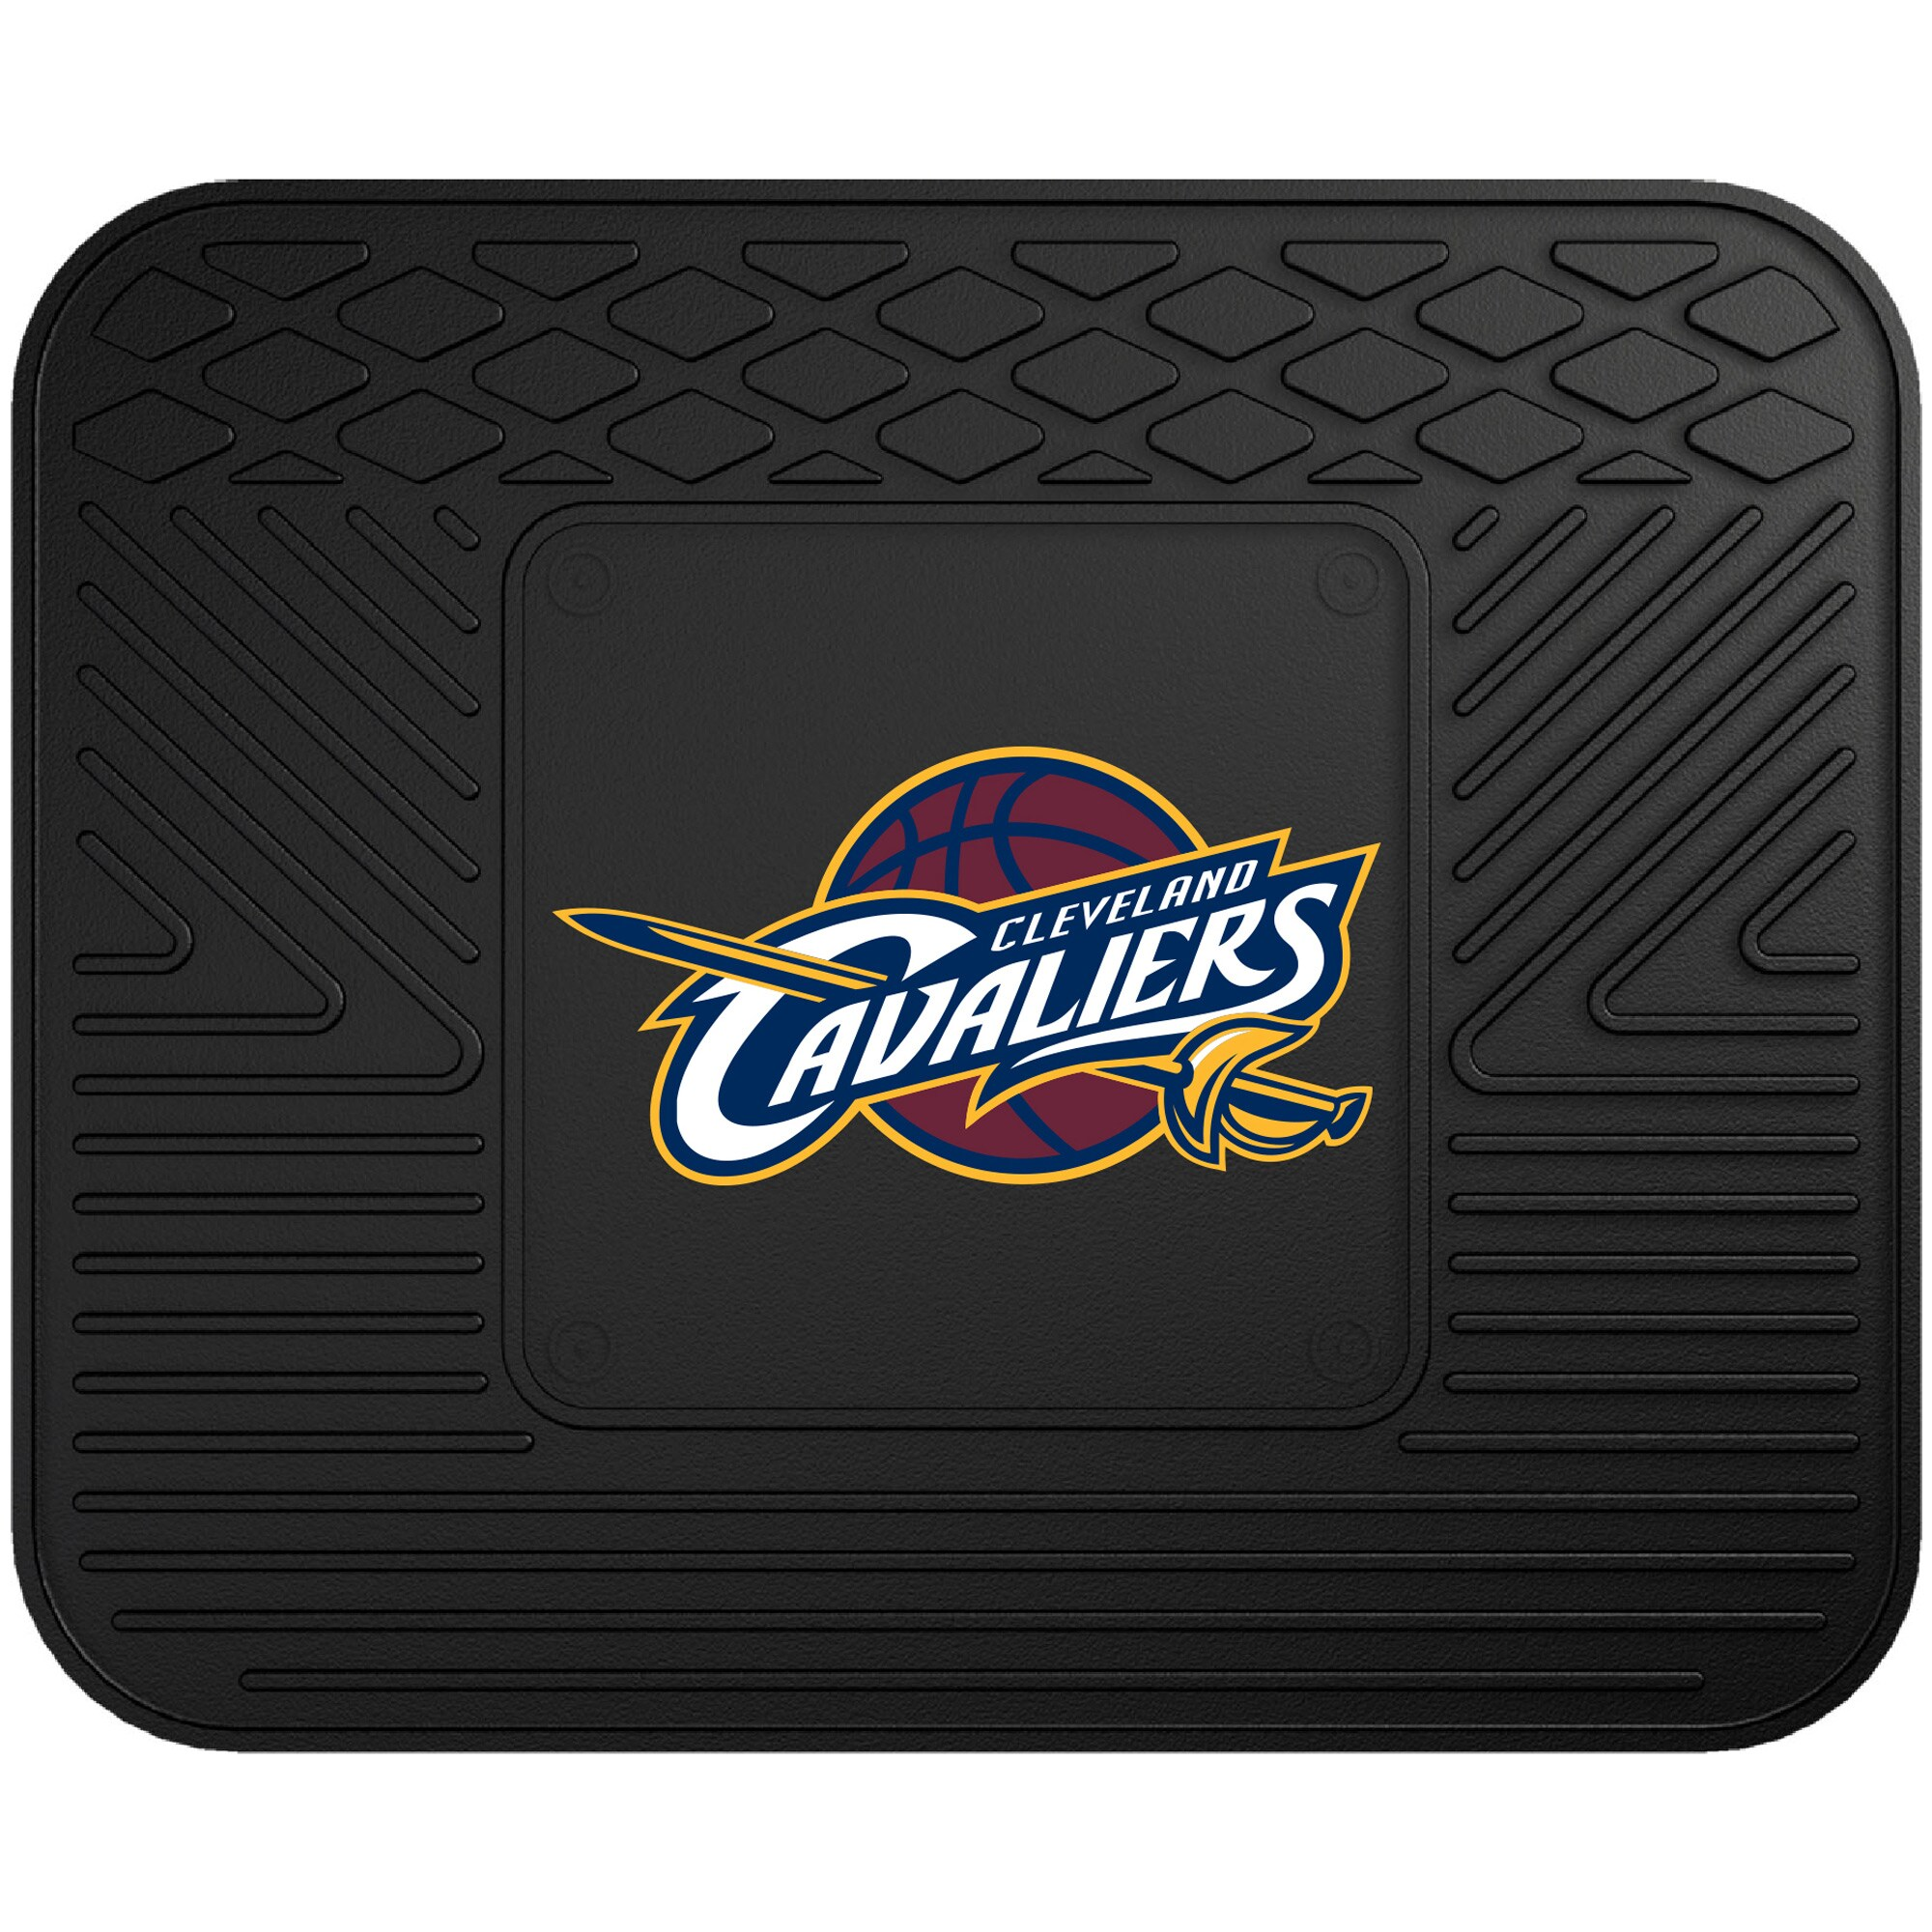 "Cleveland Cavaliers 17"" x 14"" Utility Mat"